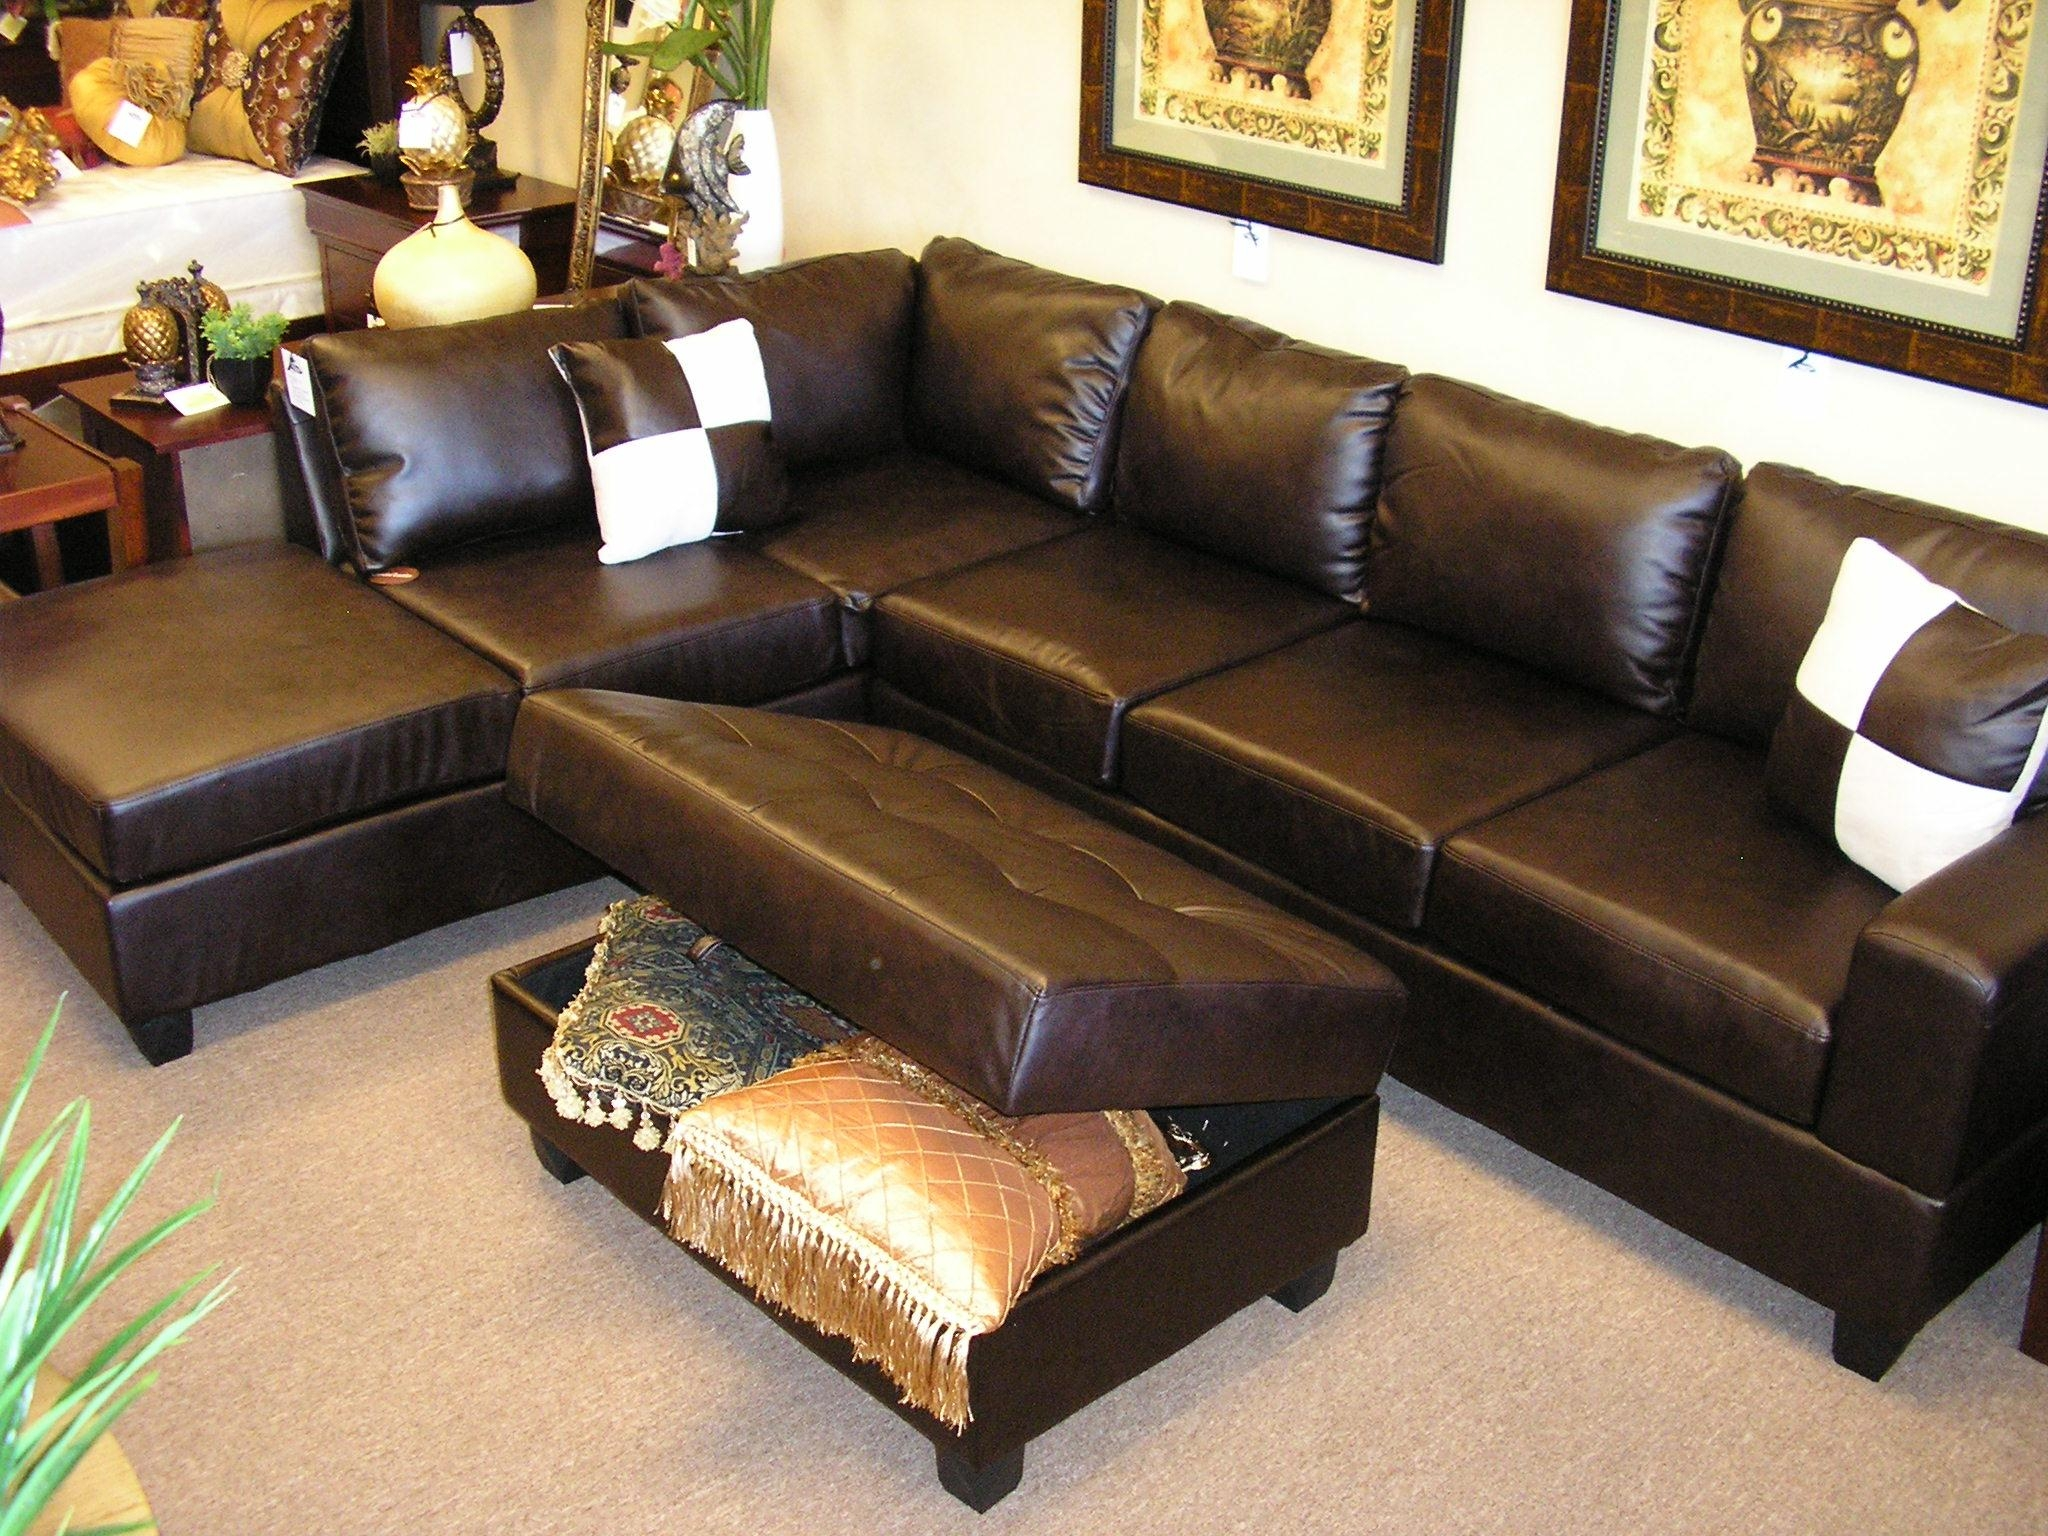 Large Sectional Sofa Leather | Tehranmix Decoration Intended For Large Leather Sectional (Image 14 of 20)